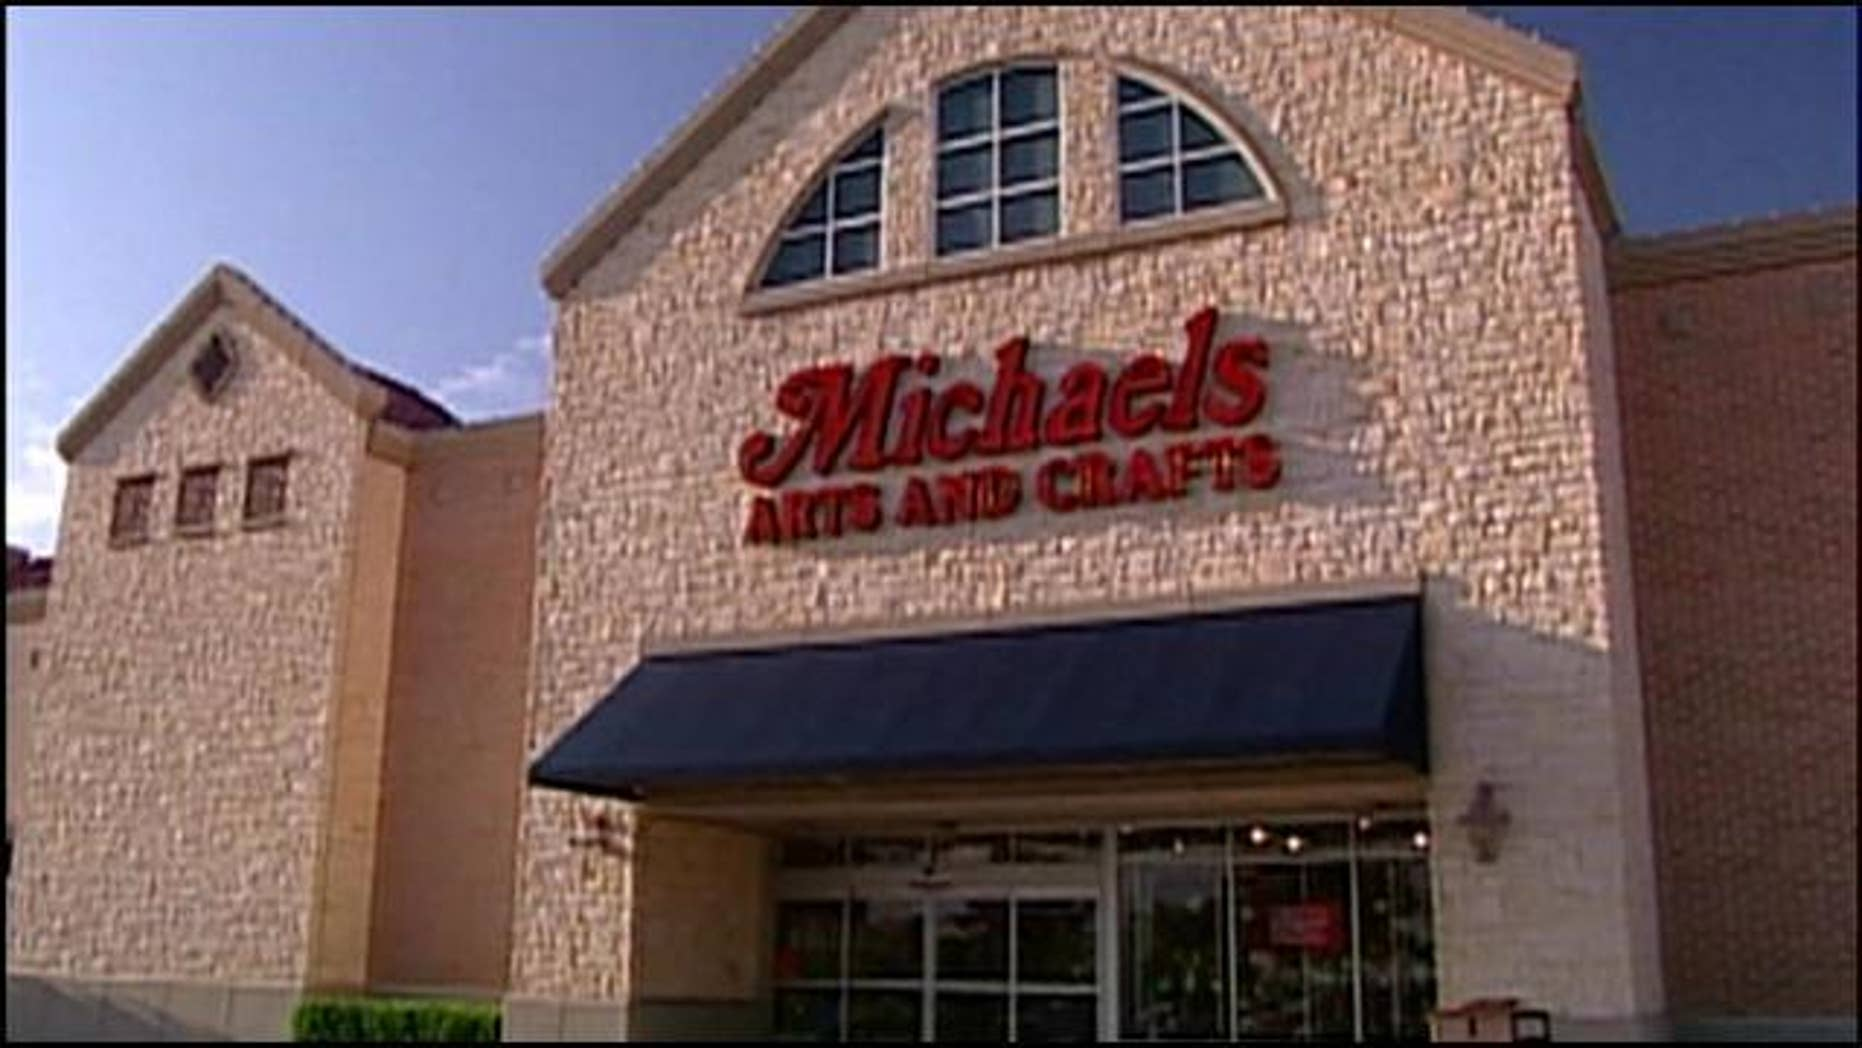 Michaels is the largest store in the U.S. devoted solely to arts and crafts (MyFoxNY.com)